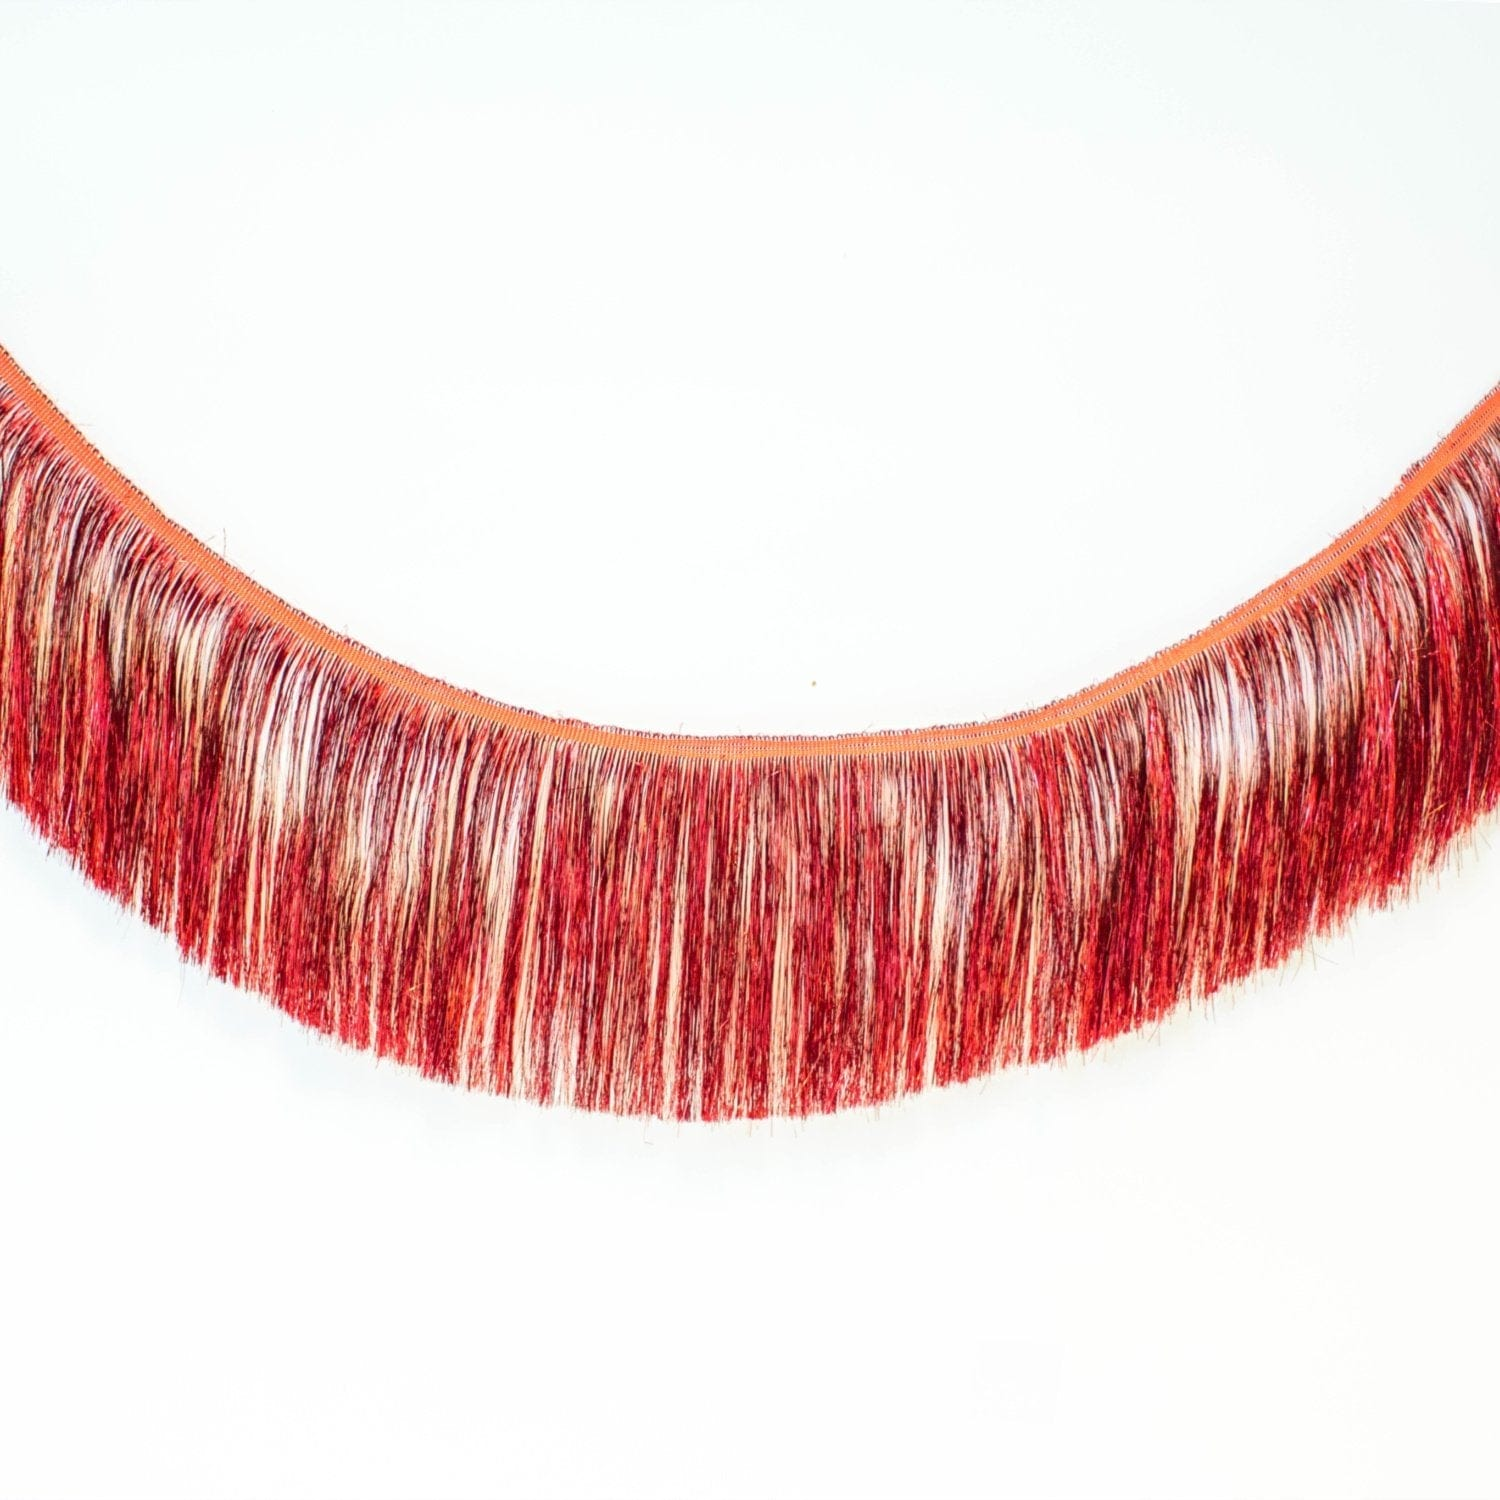 Tinsel Fringe Garland | Red Metallic Party Fringe UK